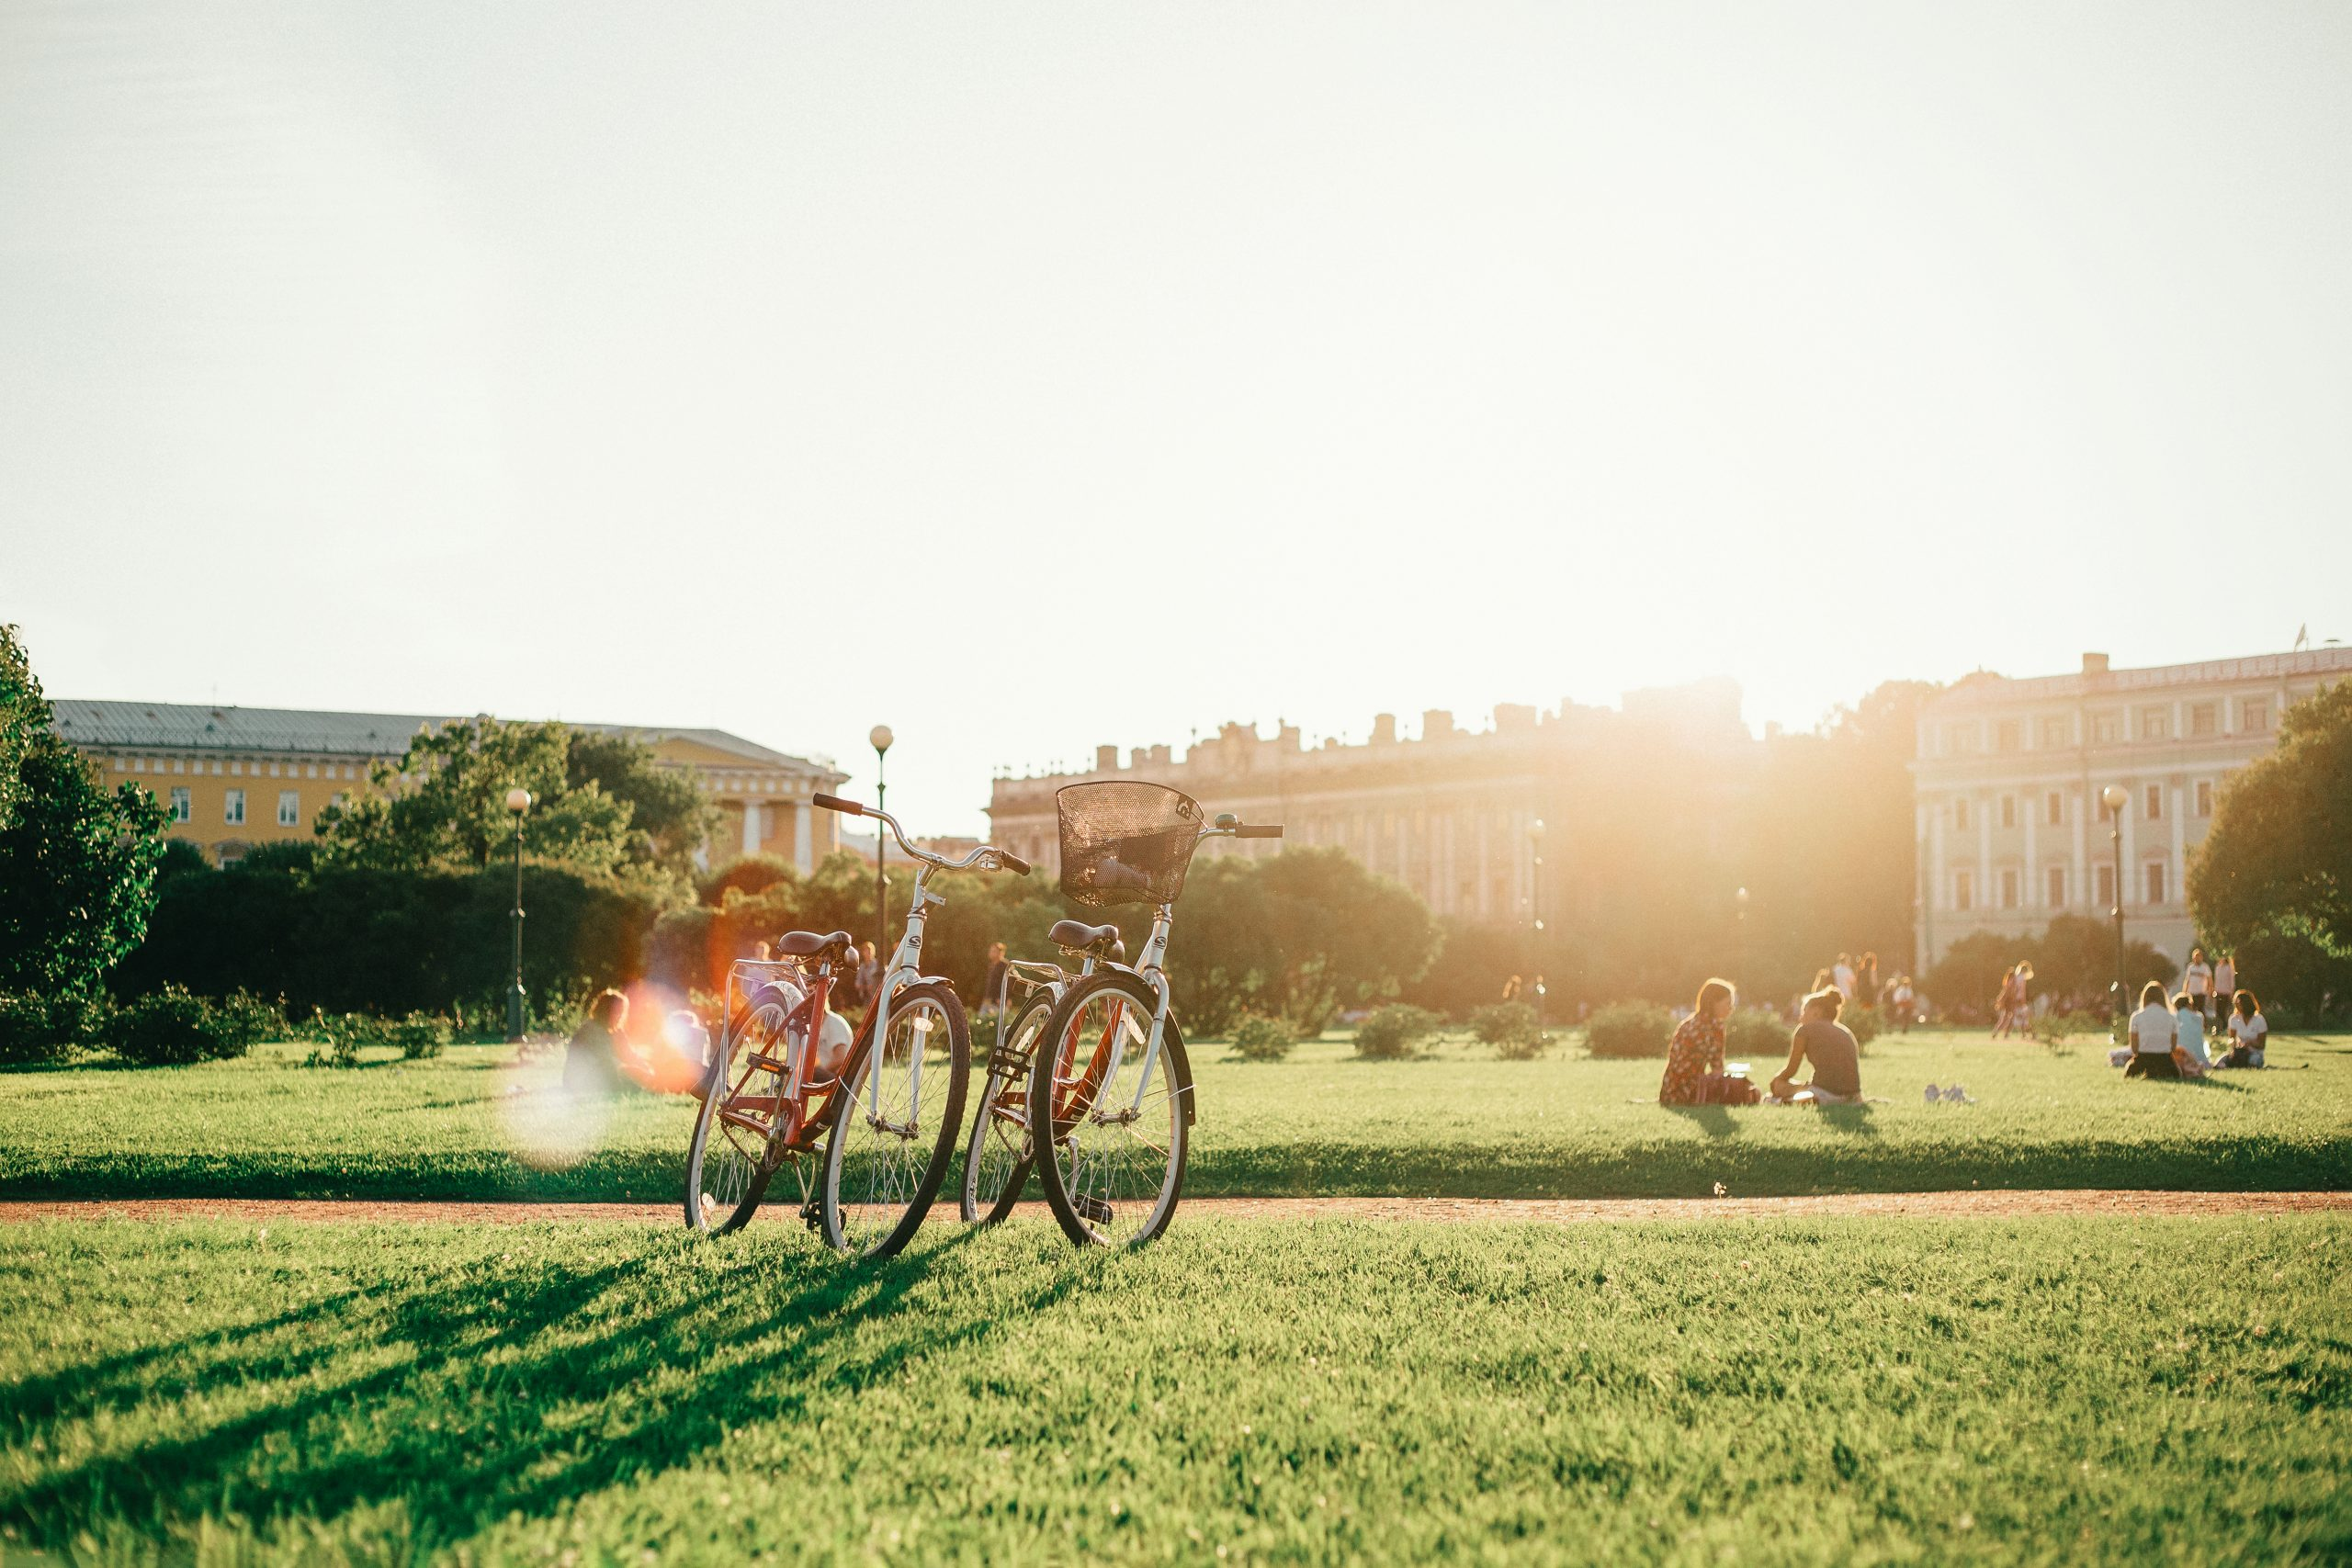 Bicycles in a park